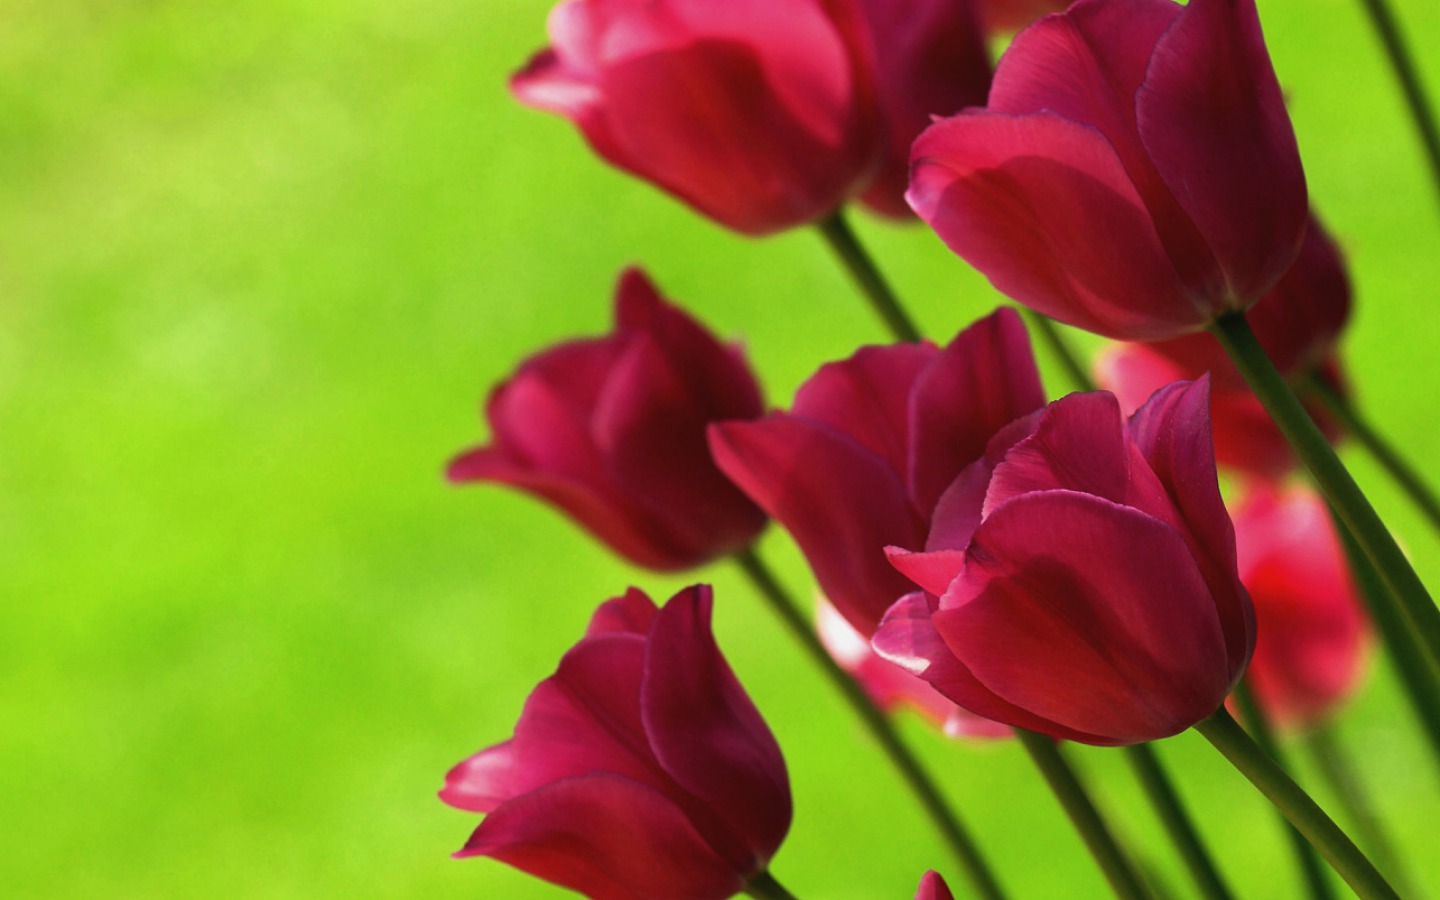 Flowers images Tulips wallpaper photos